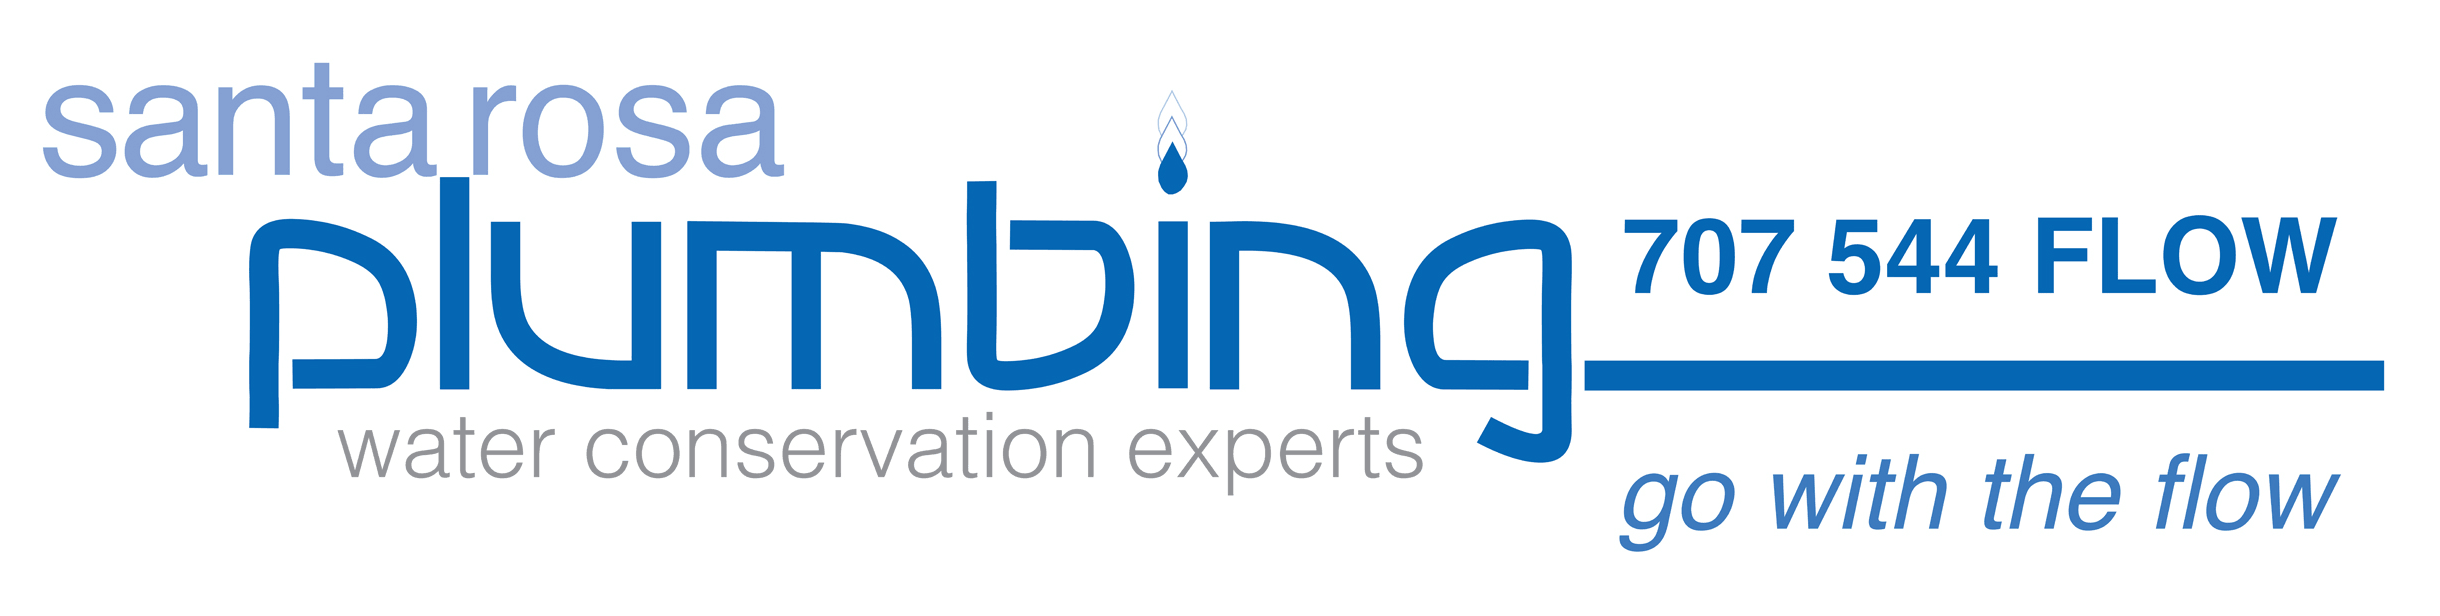 coolthing logo